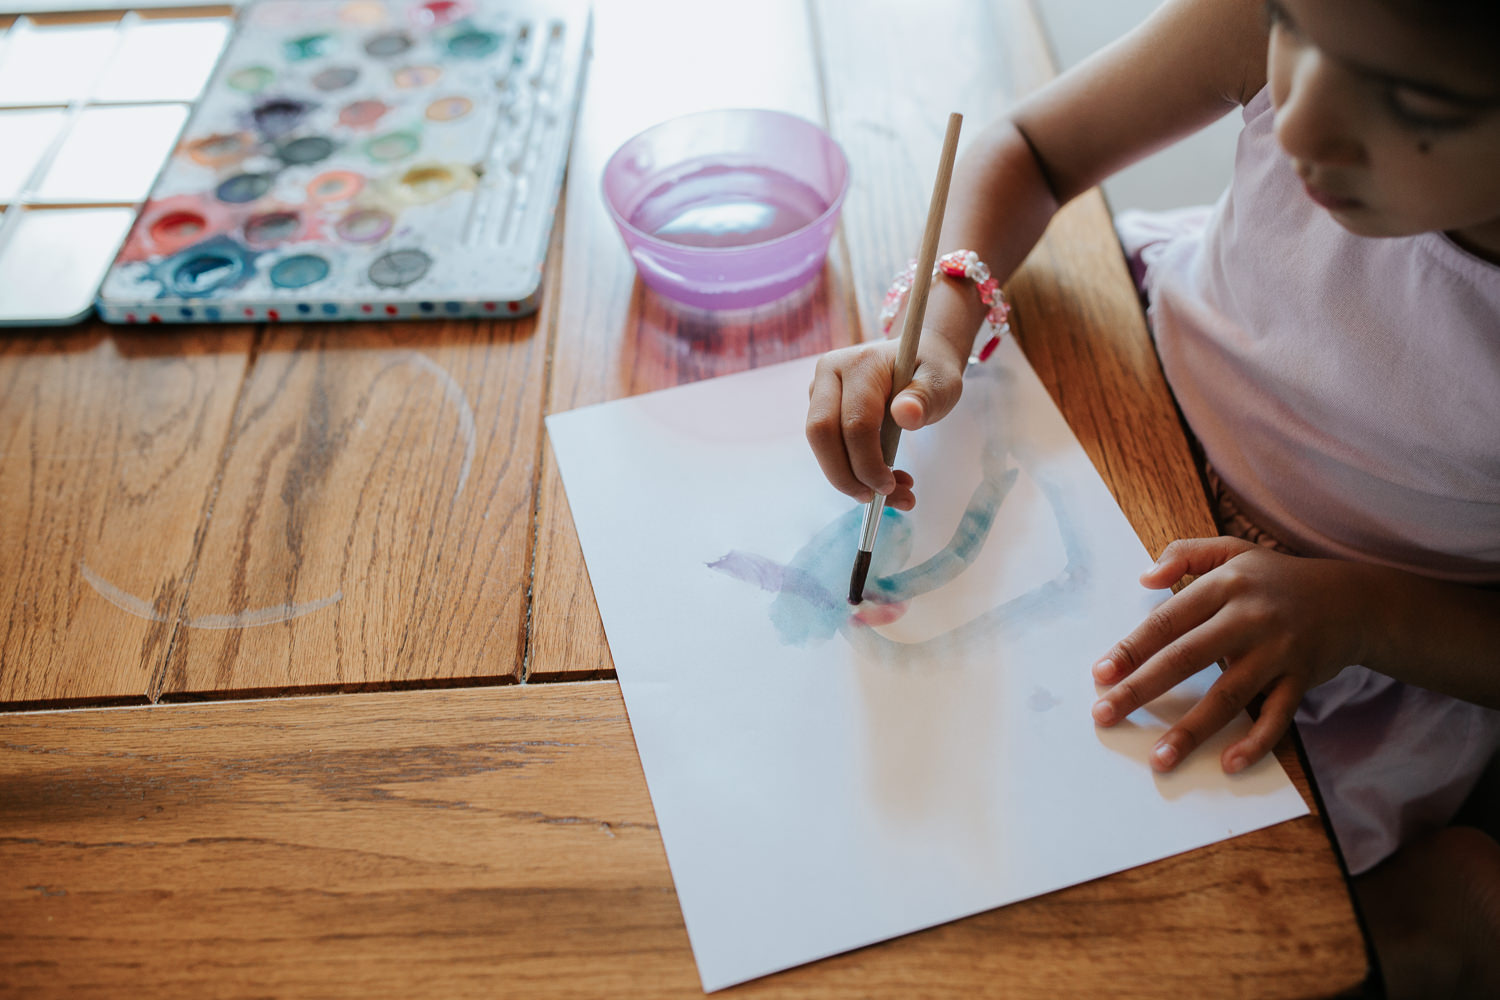 4 year old toddler girl with dark hair in pigtails wearing purple dress sitting at kitchen table painting with watercolours - Stouffville Lifestyle Photos